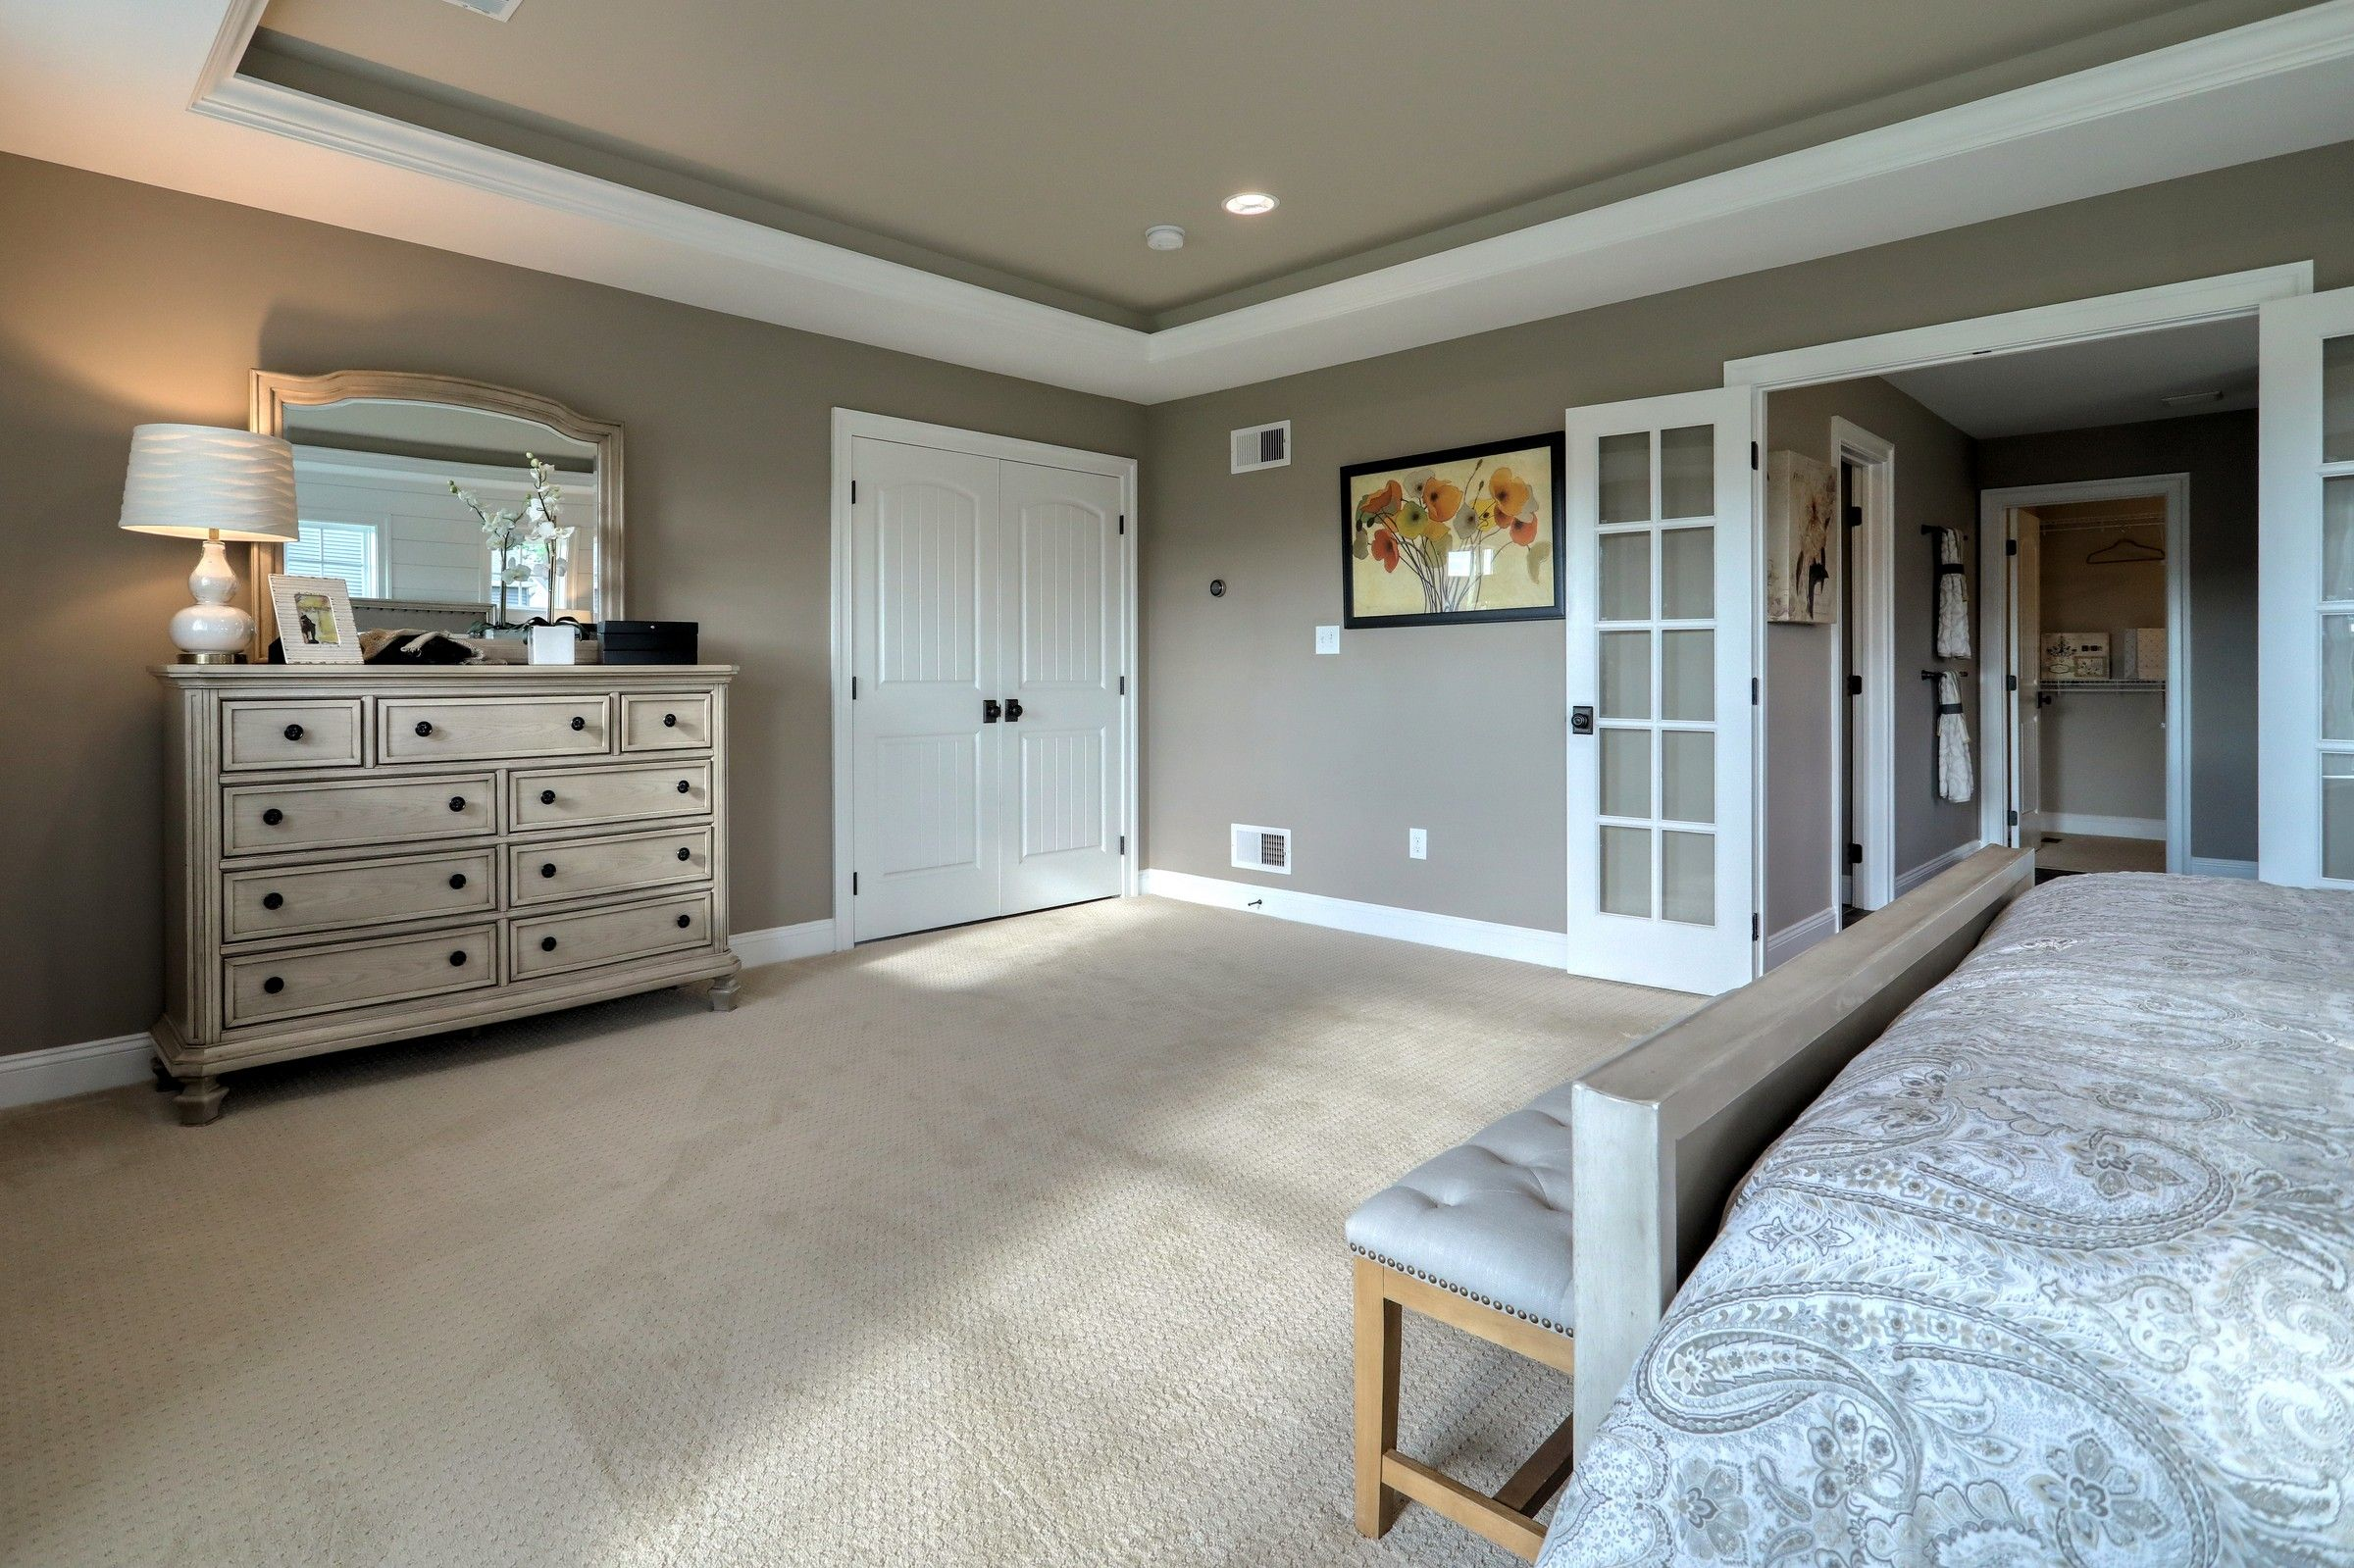 Bedroom featured in the Manchester Heritage By Keystone Custom Homes in Harrisburg, PA